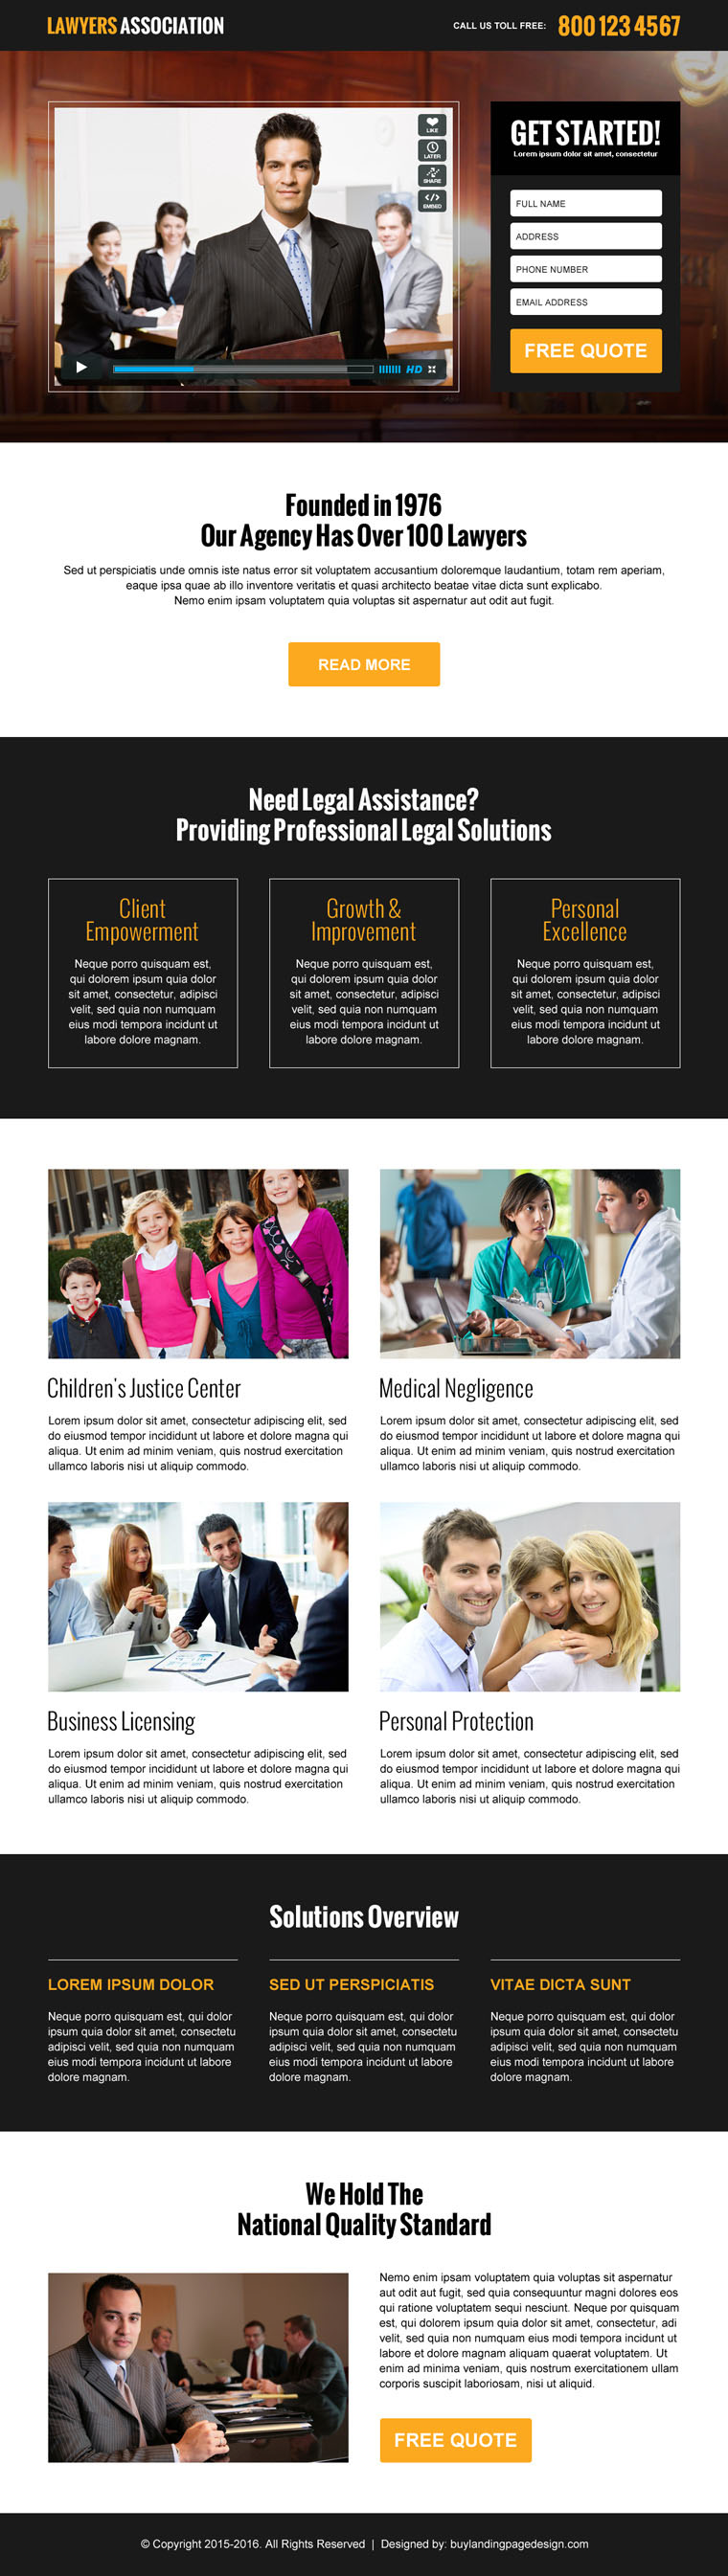 lawyers-association-converting-video-lead-gen-landing-page-design-004